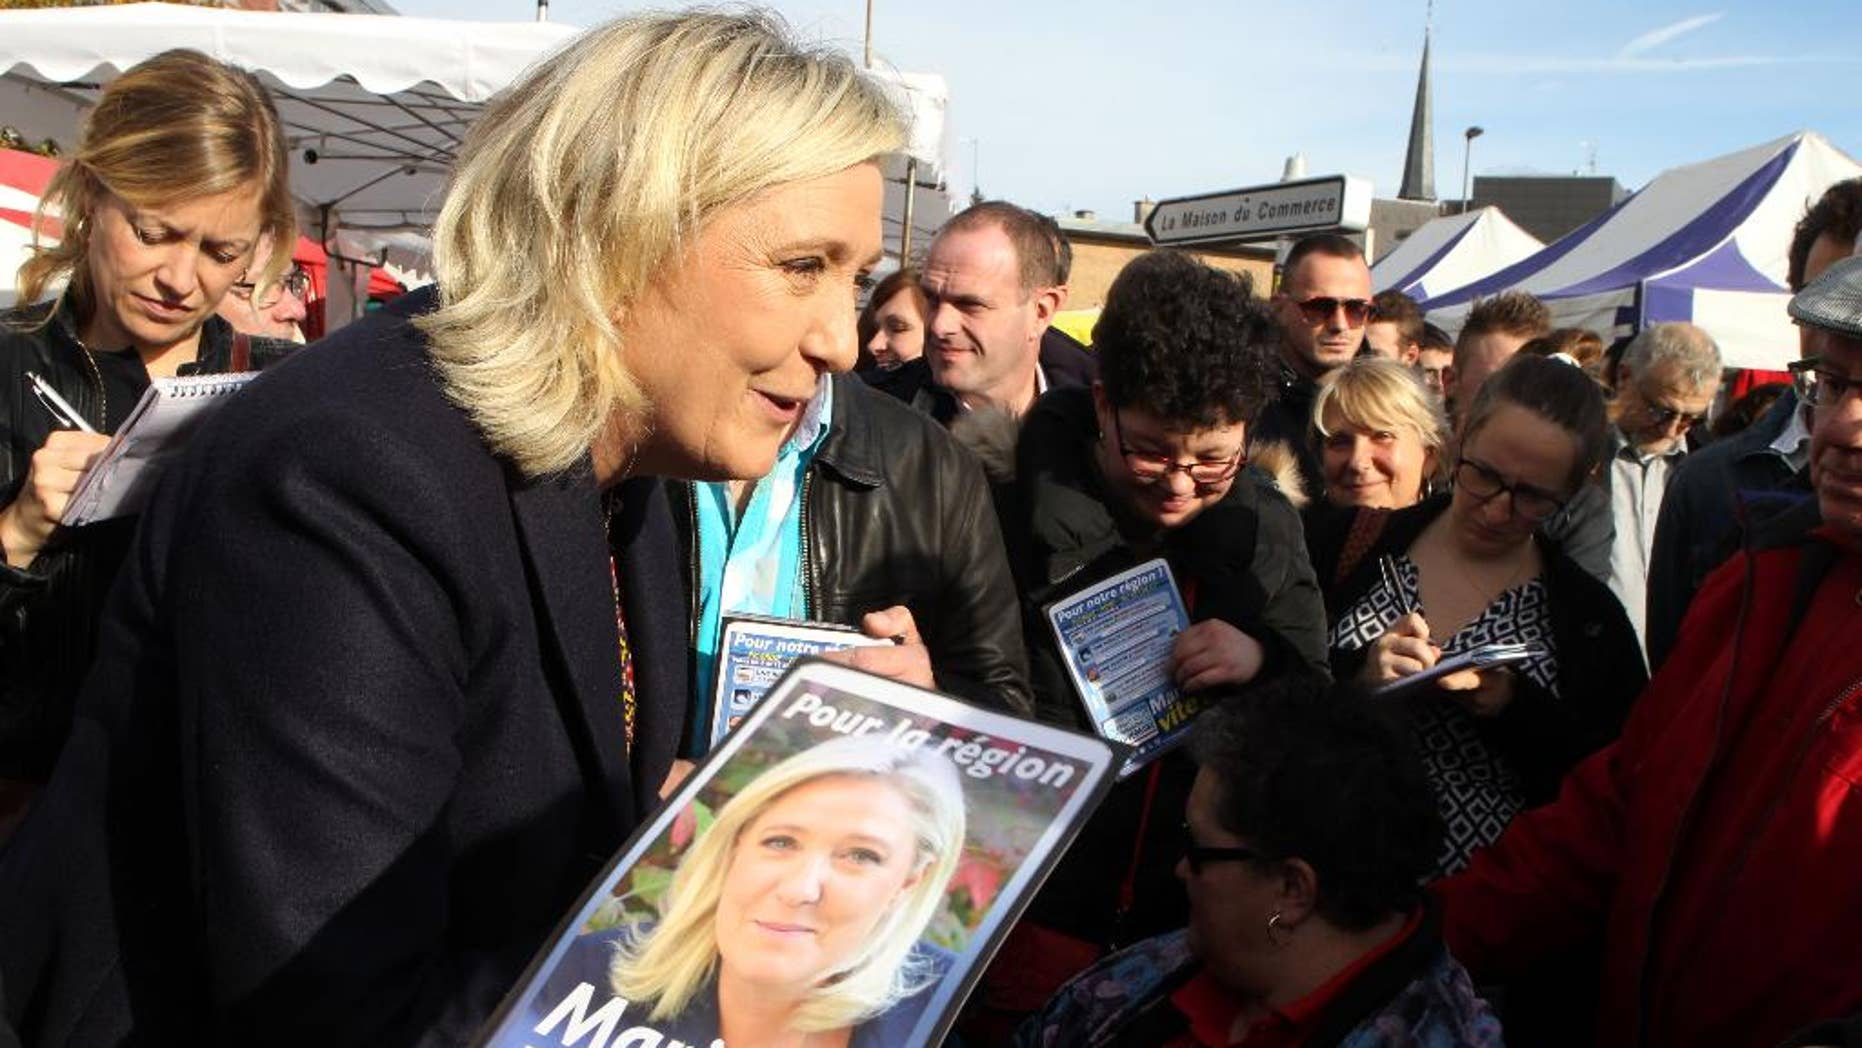 French far-right party leader Marine Le Pen meets residents in a marketplace, in Douai, northern France, as part of the municipal campaign, Saturday, Nov. 7, 2015. Regional elections are taking place next month in which the far right National Front is hoping to increase its political power, in part by capitalizing on tensions over waves of migrants in Europe this year. The first round of the regional elections will take place on Dec. 6, 2015. (AP Photo/Michel Spingler)